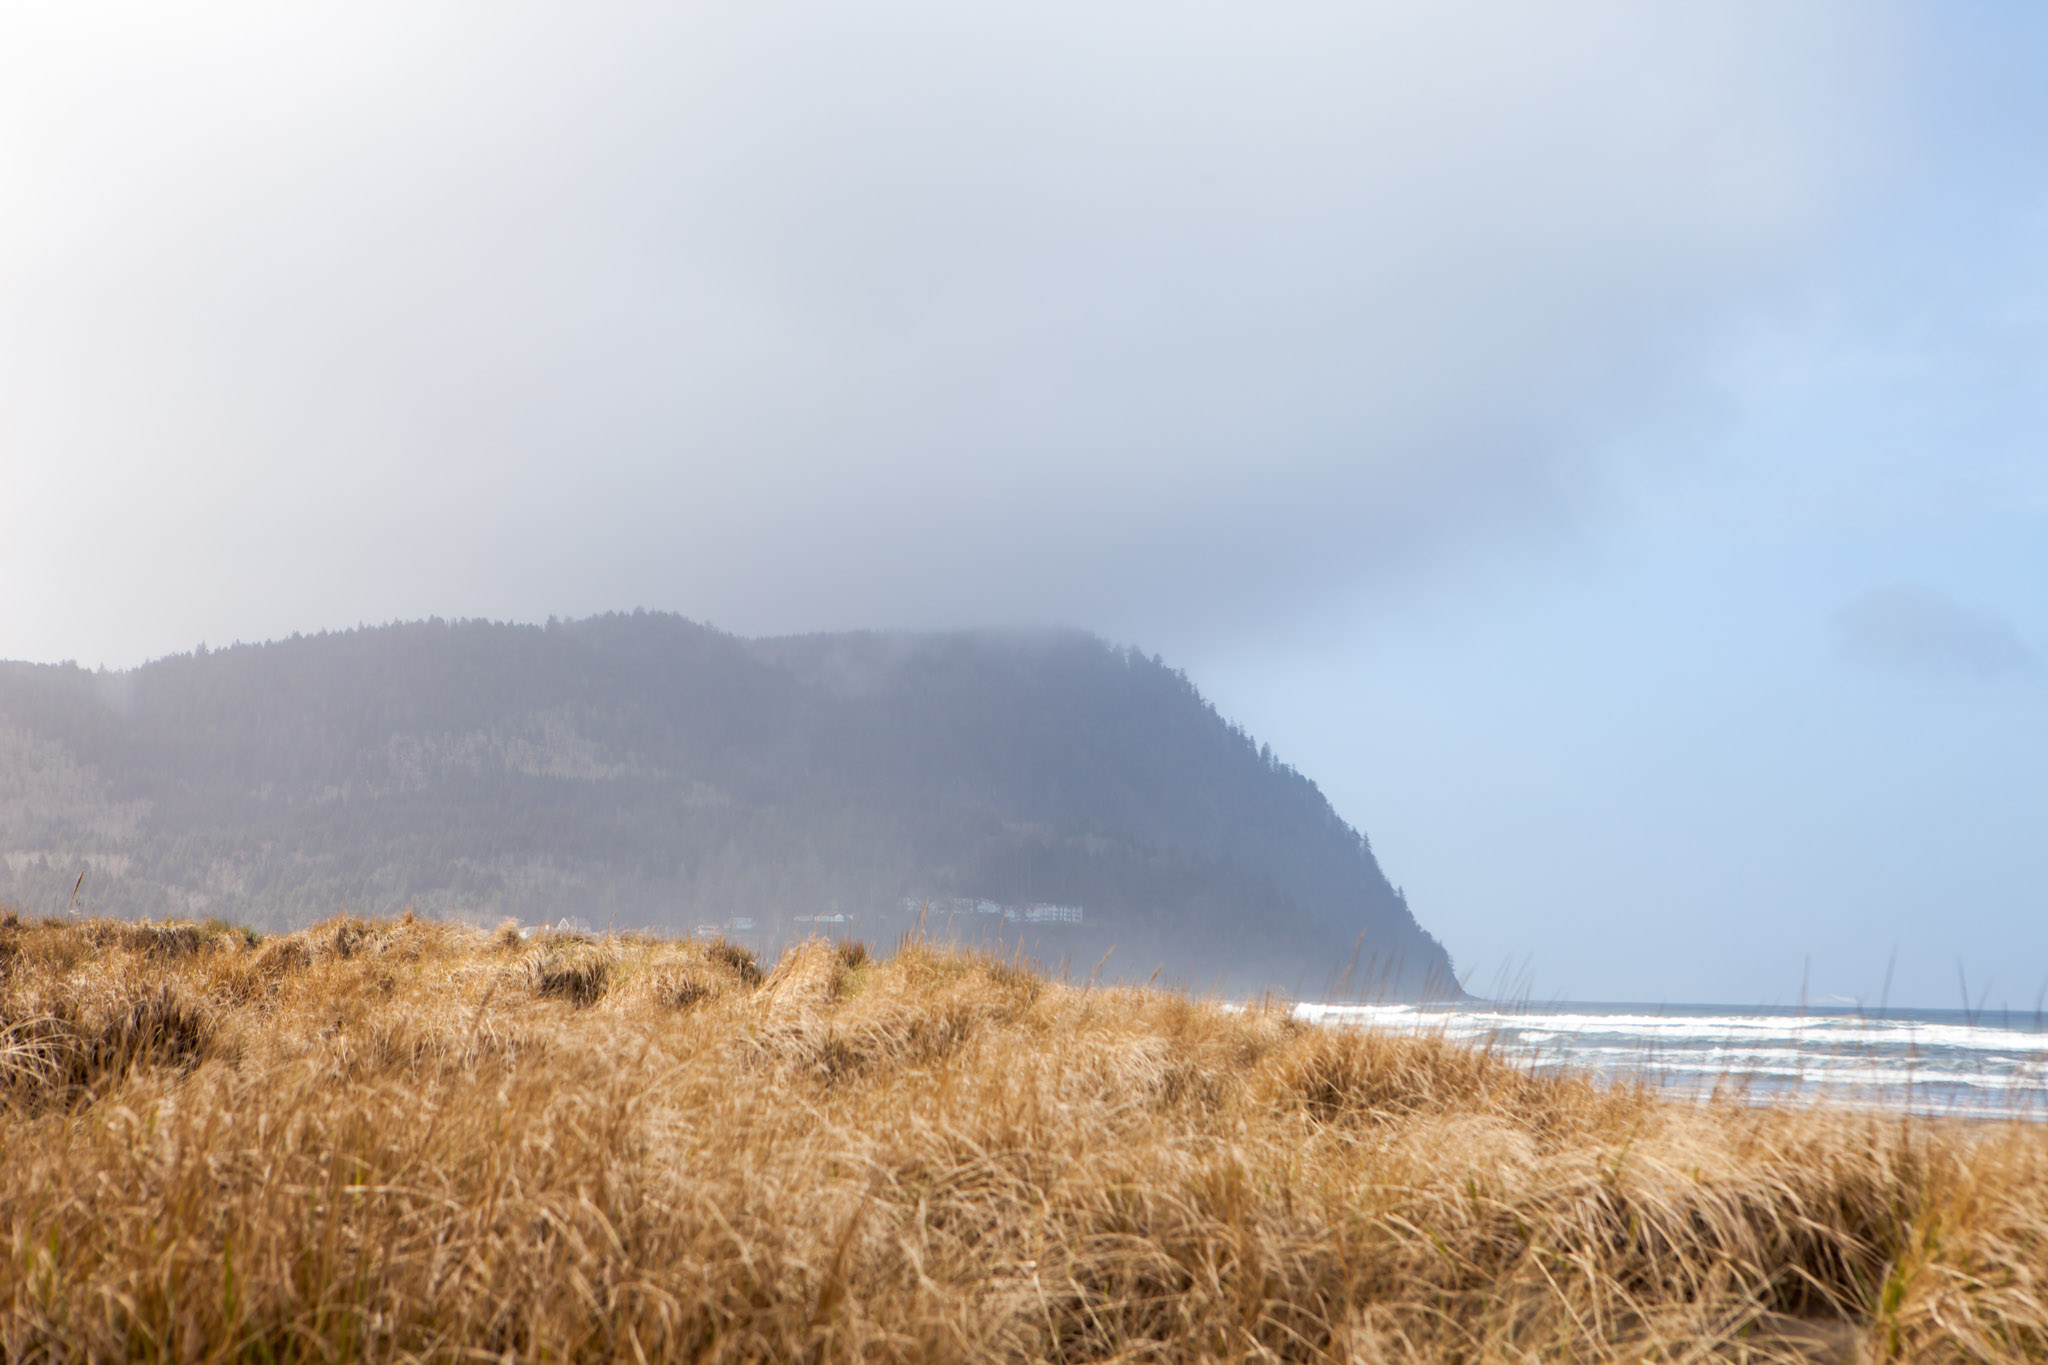 Dunes in Seaside, Oregon